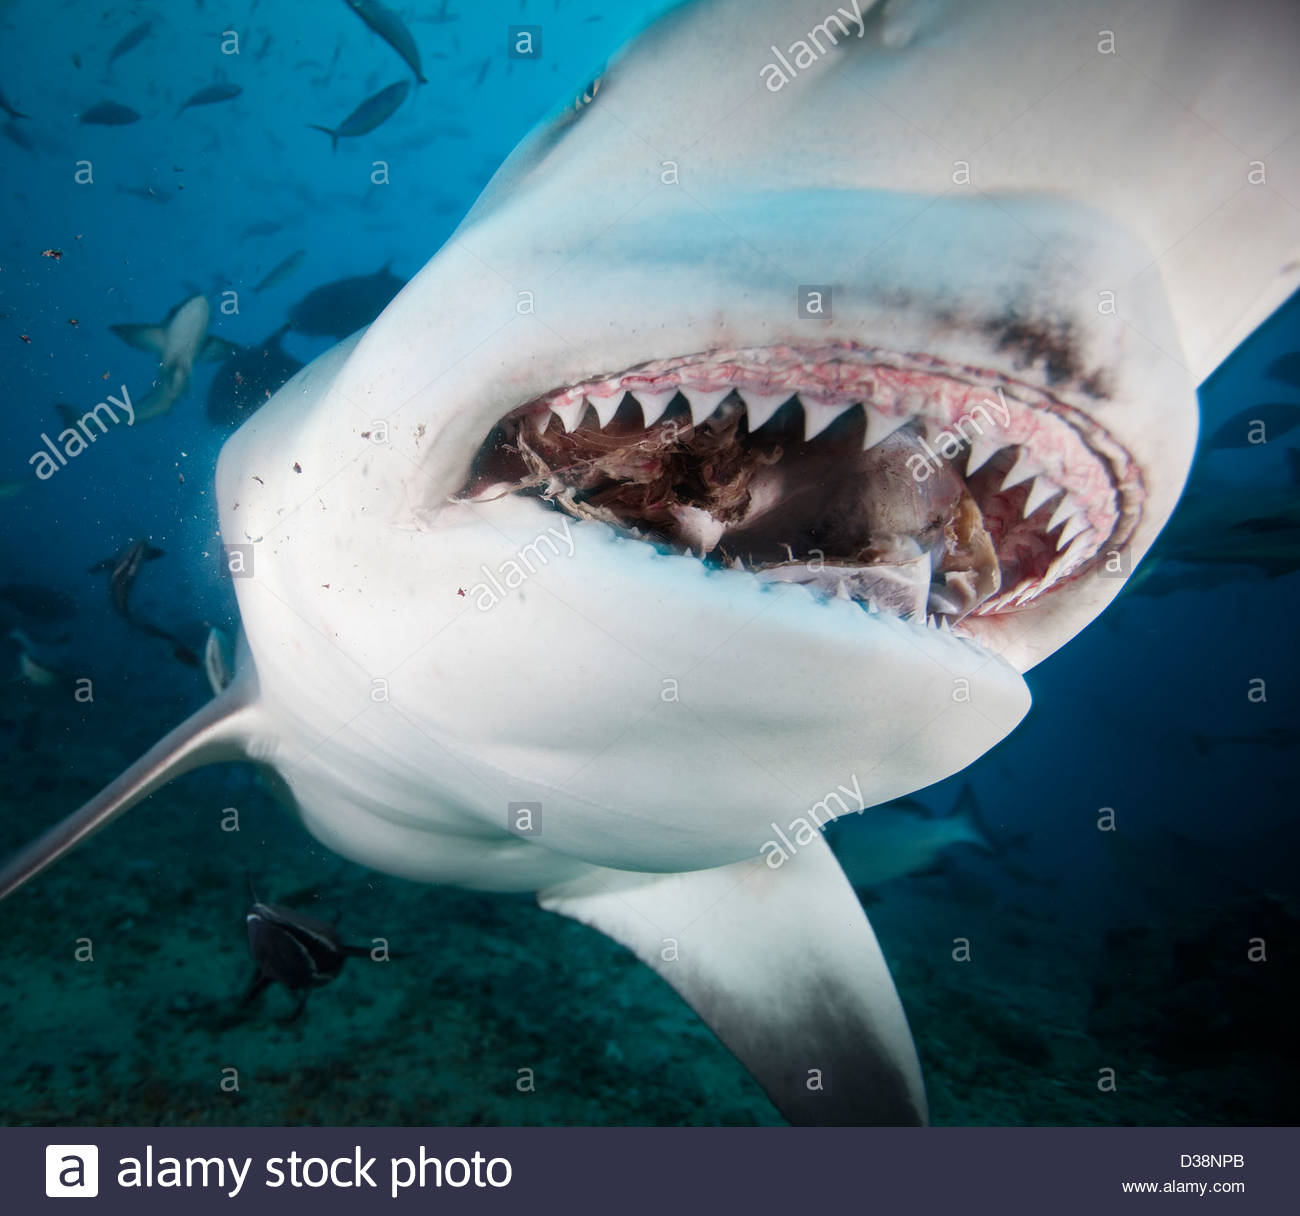 Close Up Of Bull Sharks Teeth Stock Photo Royalty Free